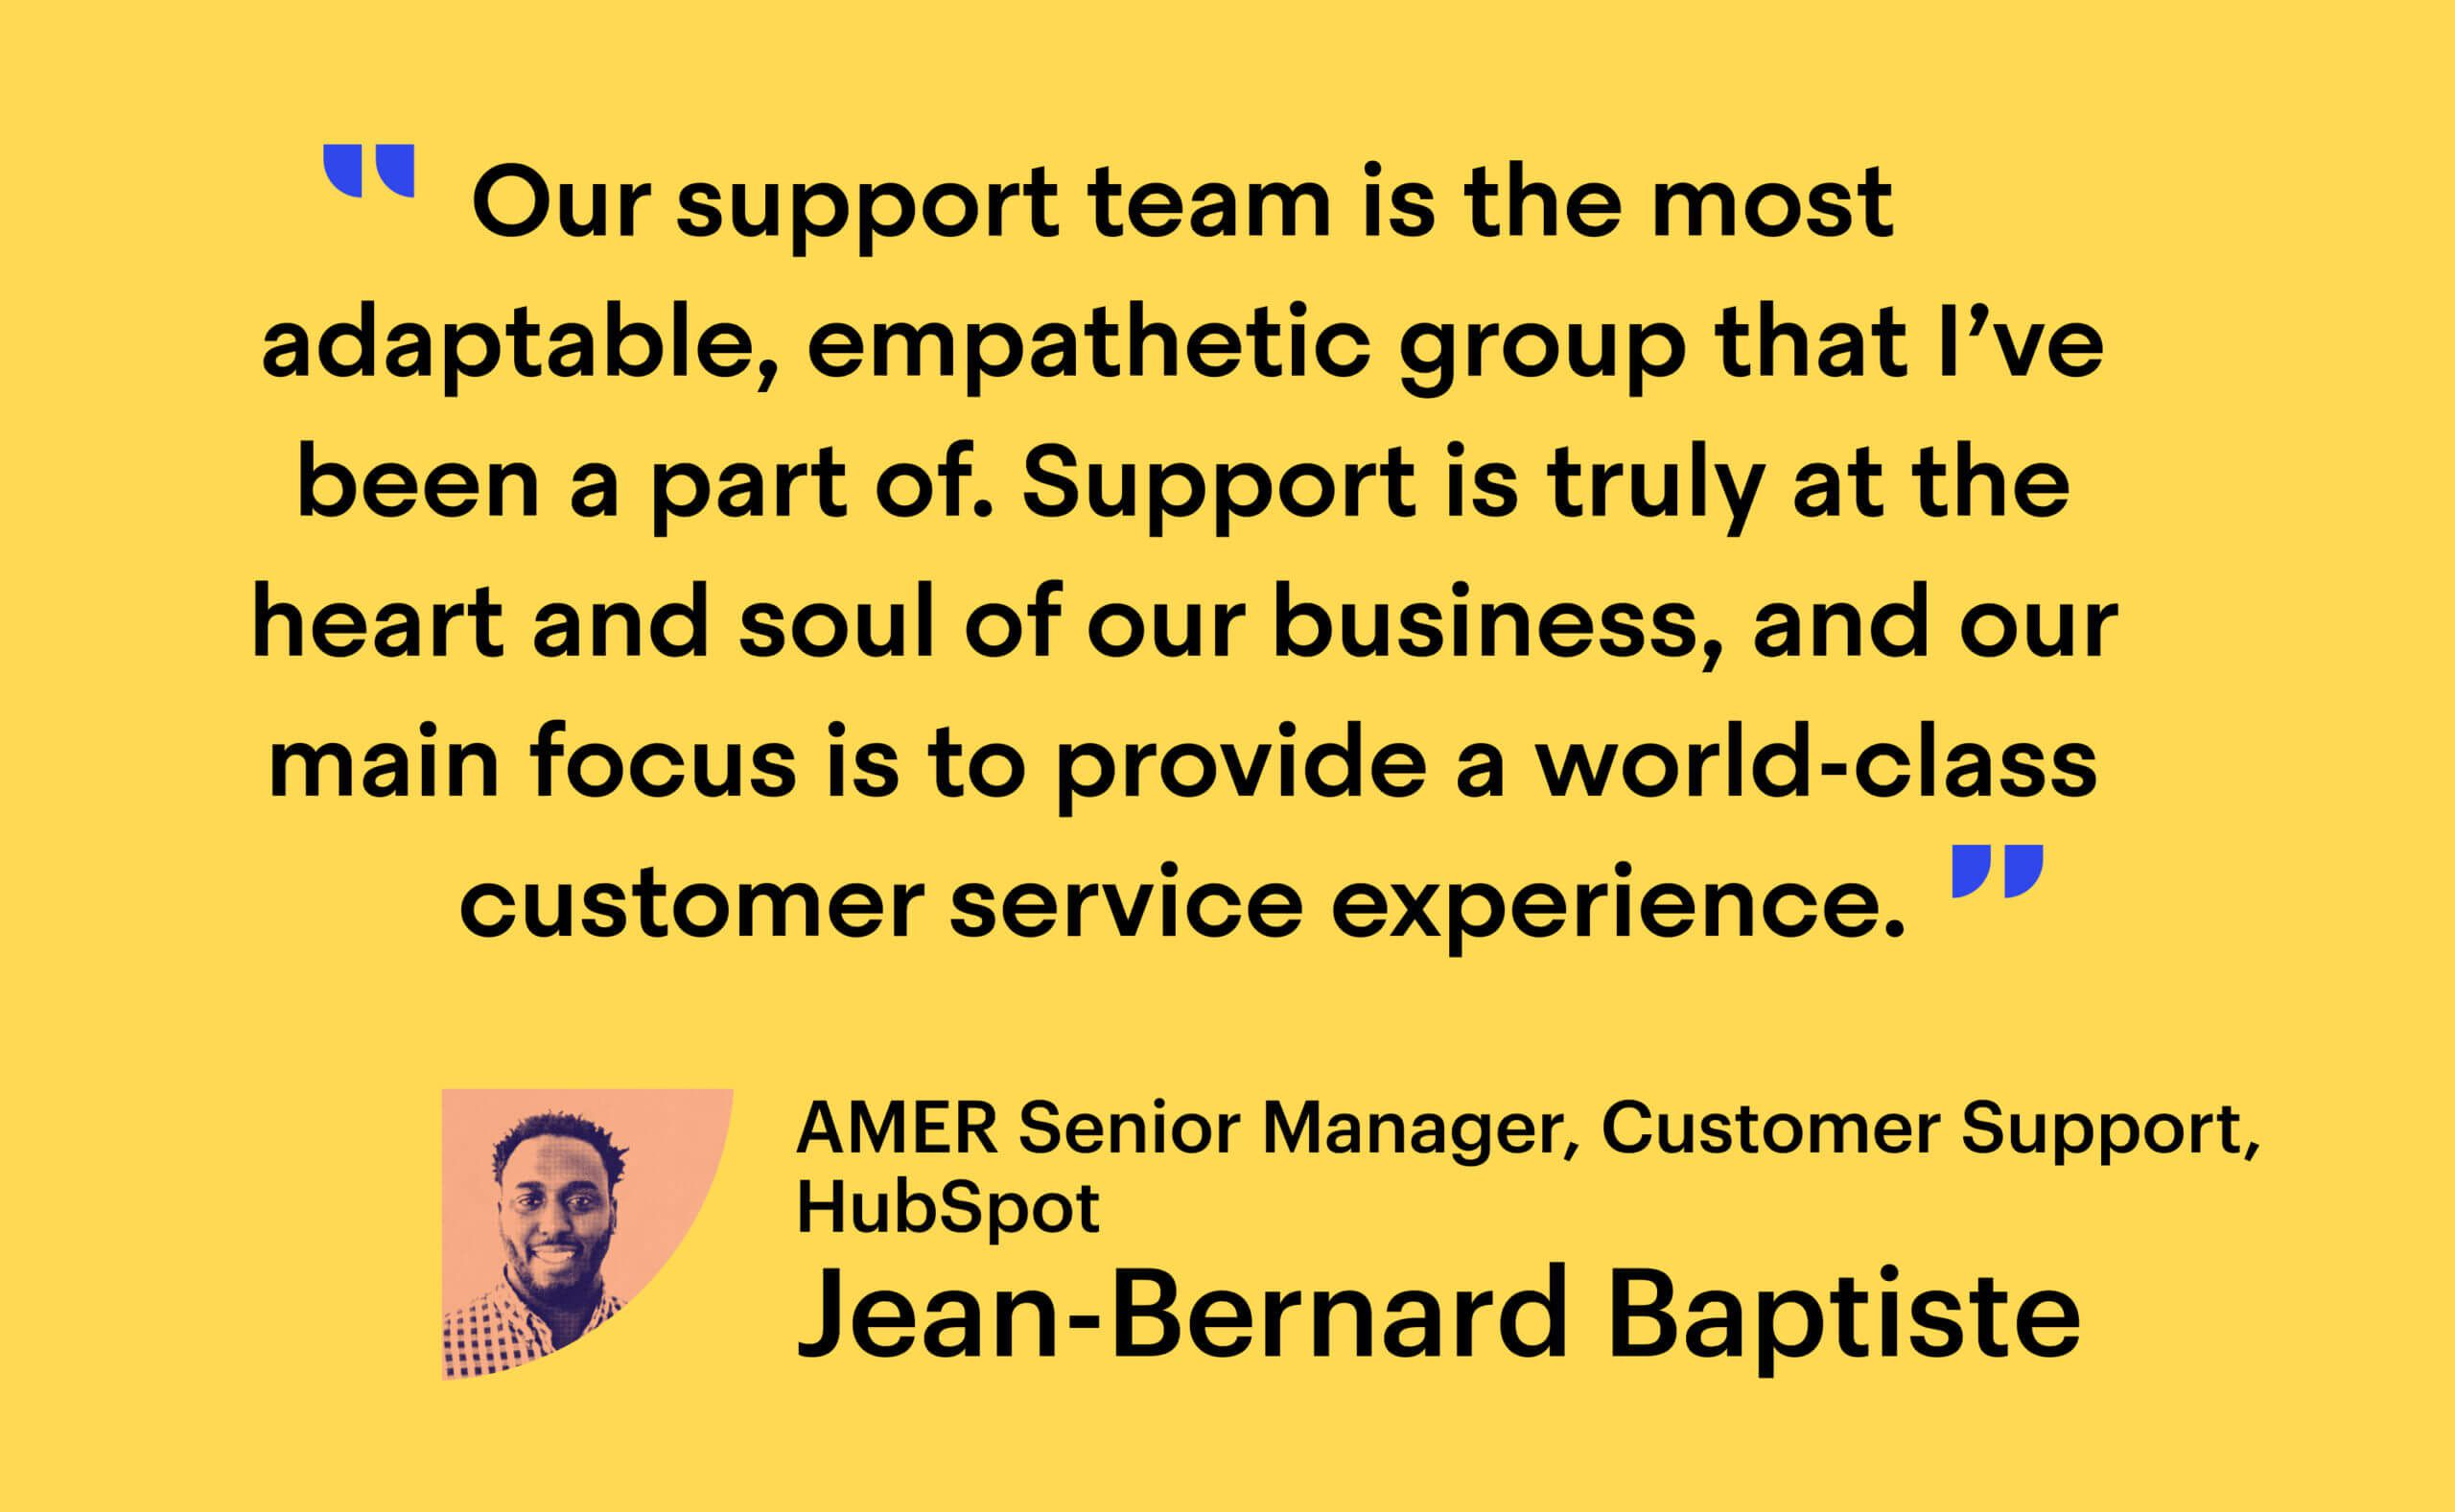 """Quote from Jean-Bernard Baptiste: """"Our support team is the most adaptable, empathetic group that I've been a part of. Support is truly at the heart and soul of our business, and our main focus is to provide a world-class customer service experience."""""""